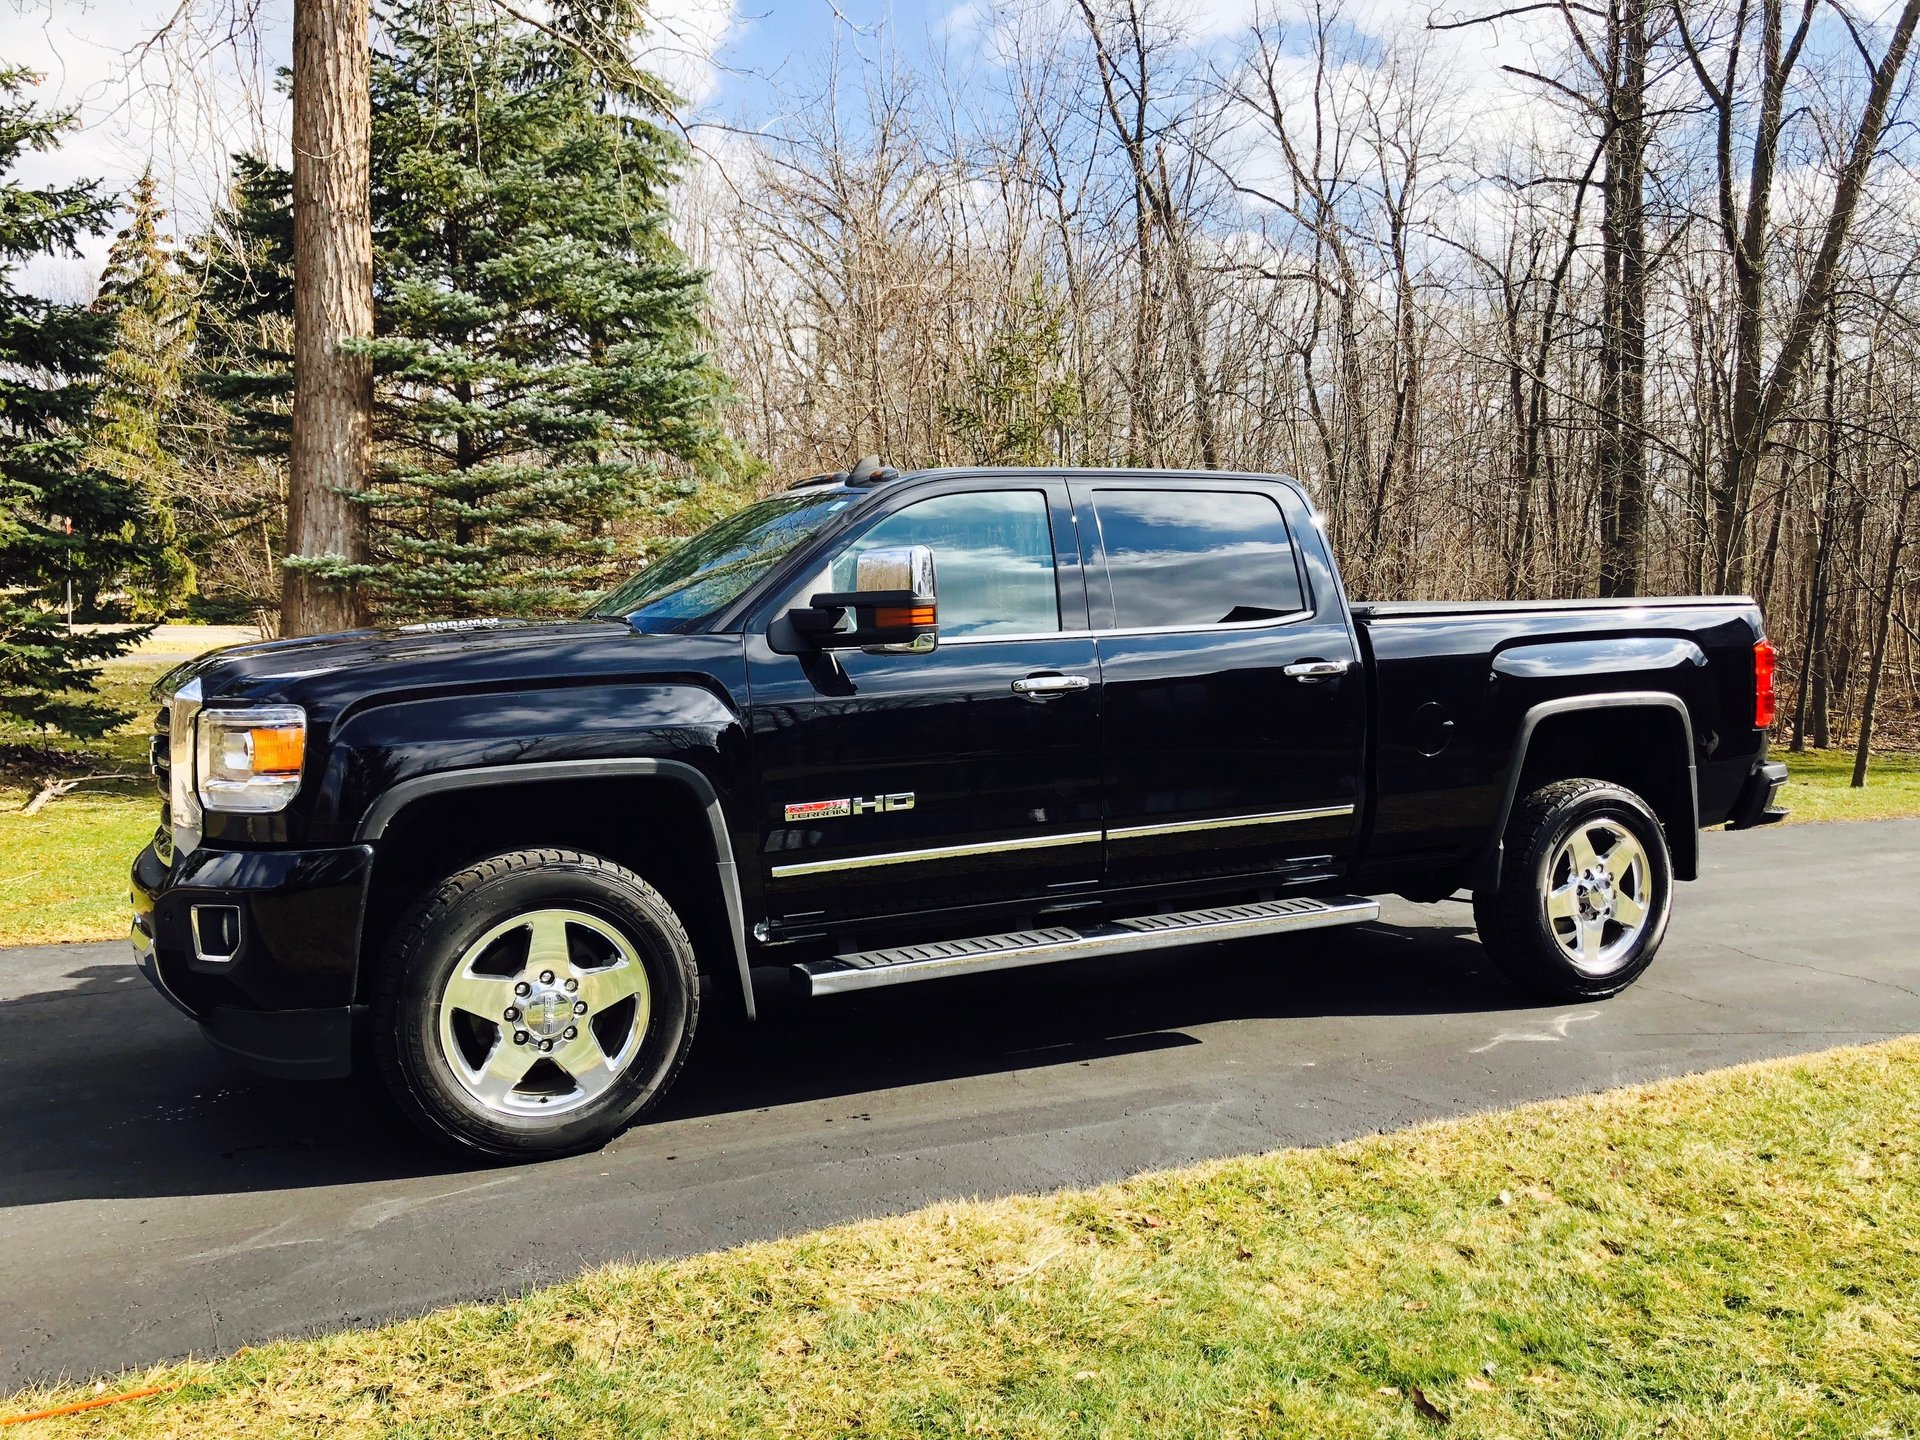 10130202be35c hd 2015 gmc sierra 2500 slt